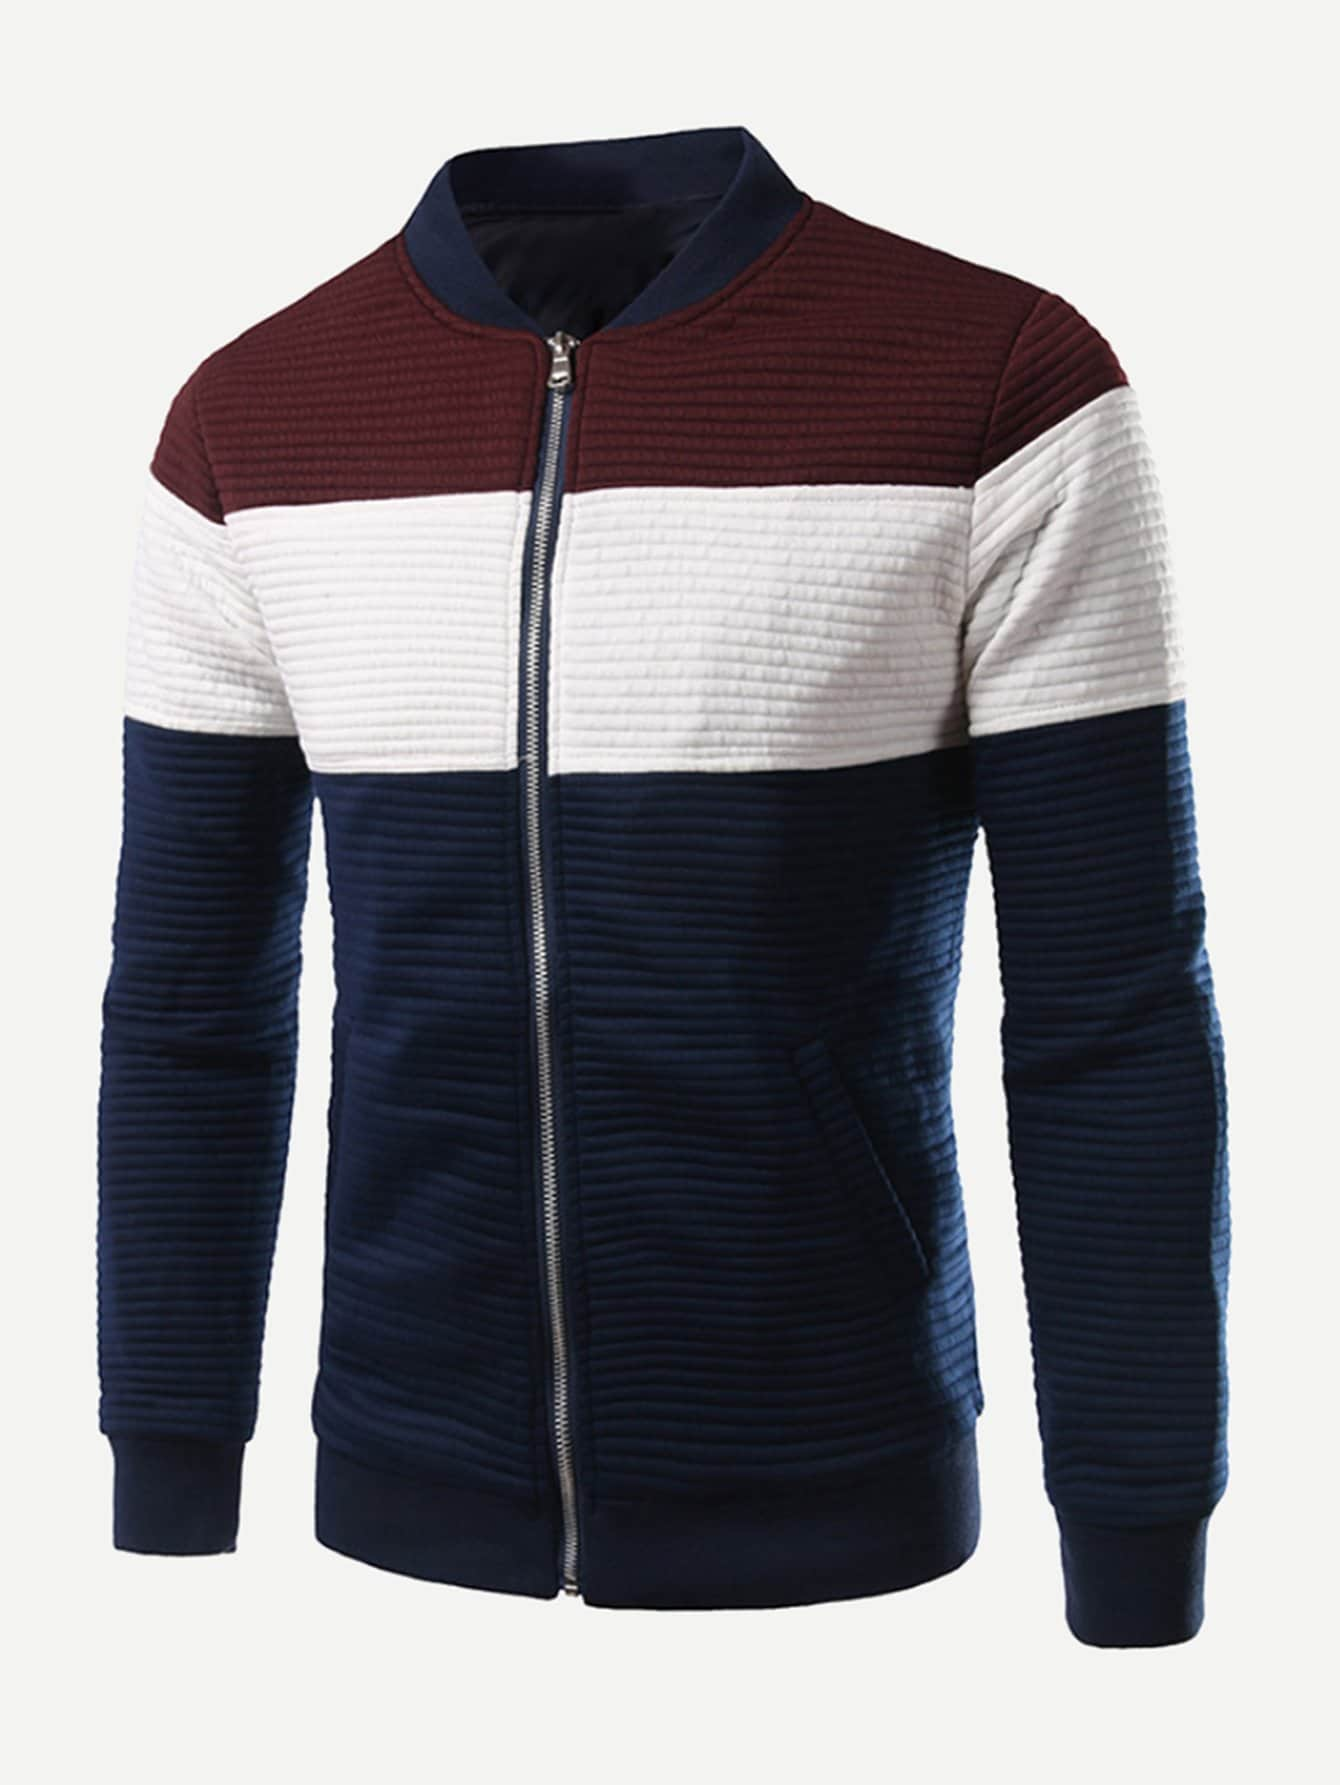 Men Rib Knit Trim Color Block Jacket